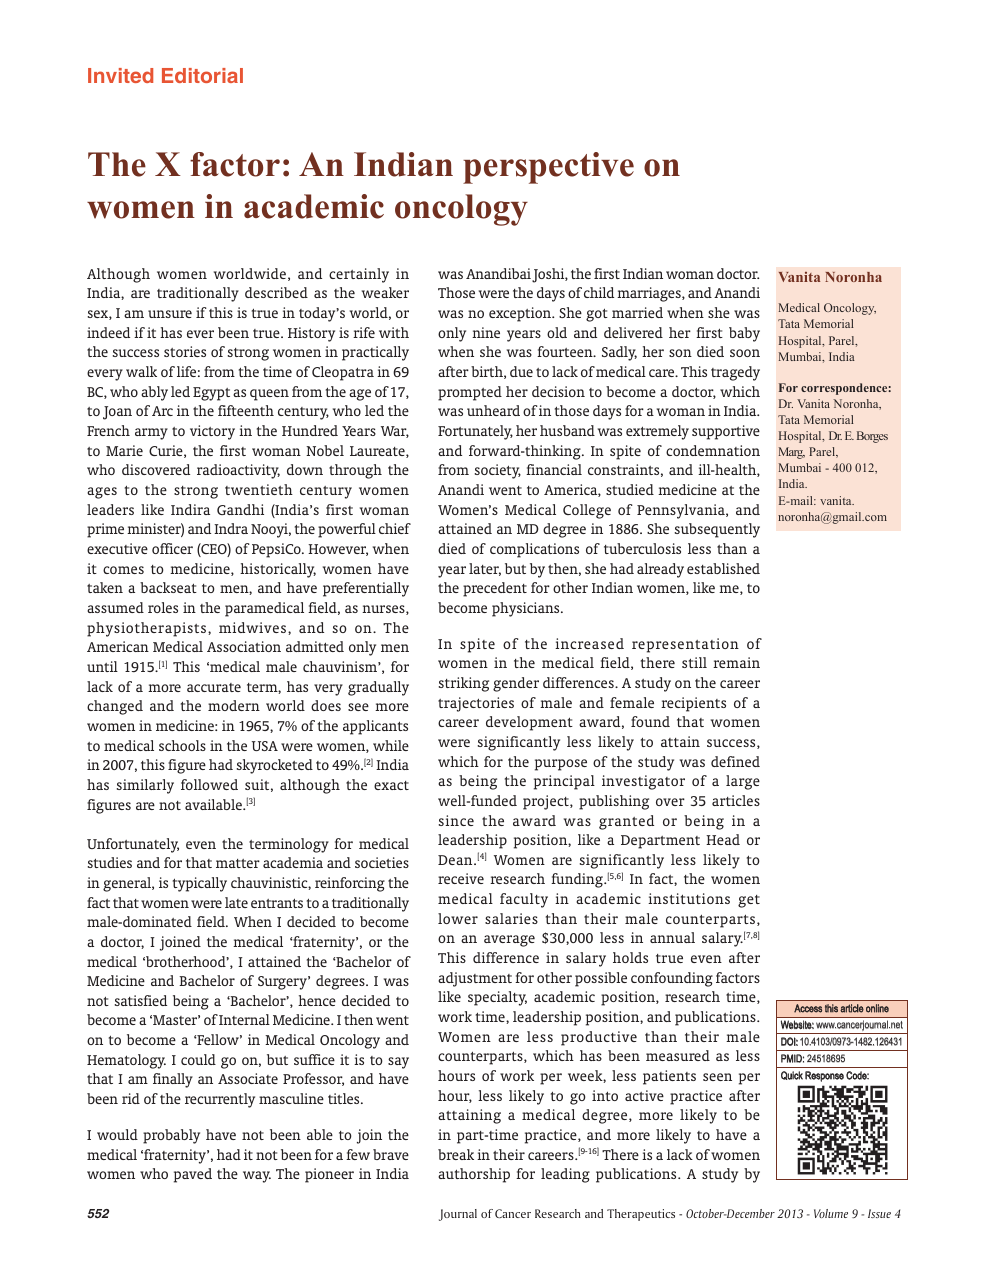 The X factor: An Indian perspective on women in academic